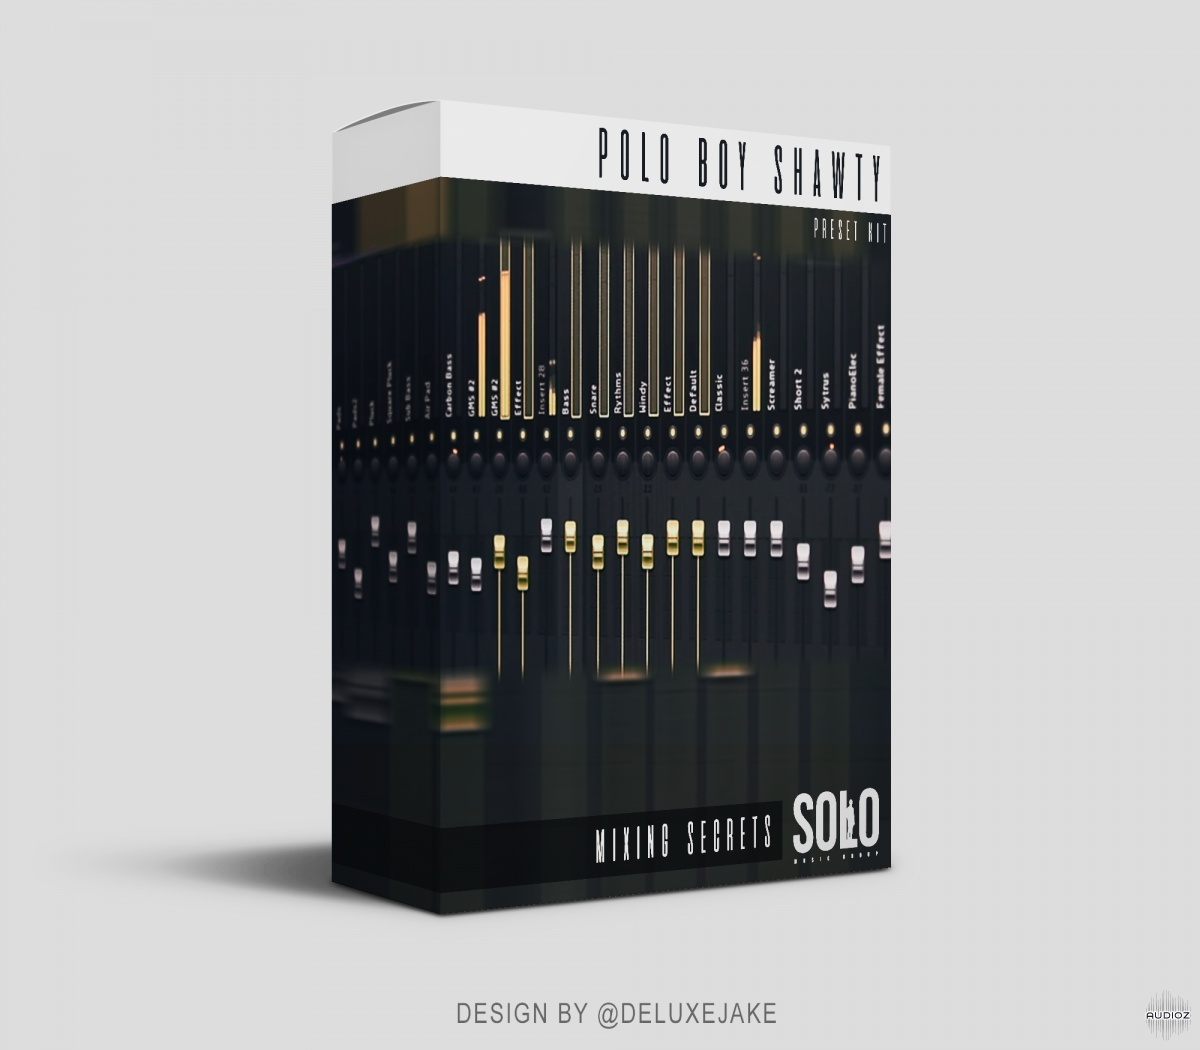 This is Polo Boy Shawty Official Mixing Preset Kit made specifically for Fl Studio